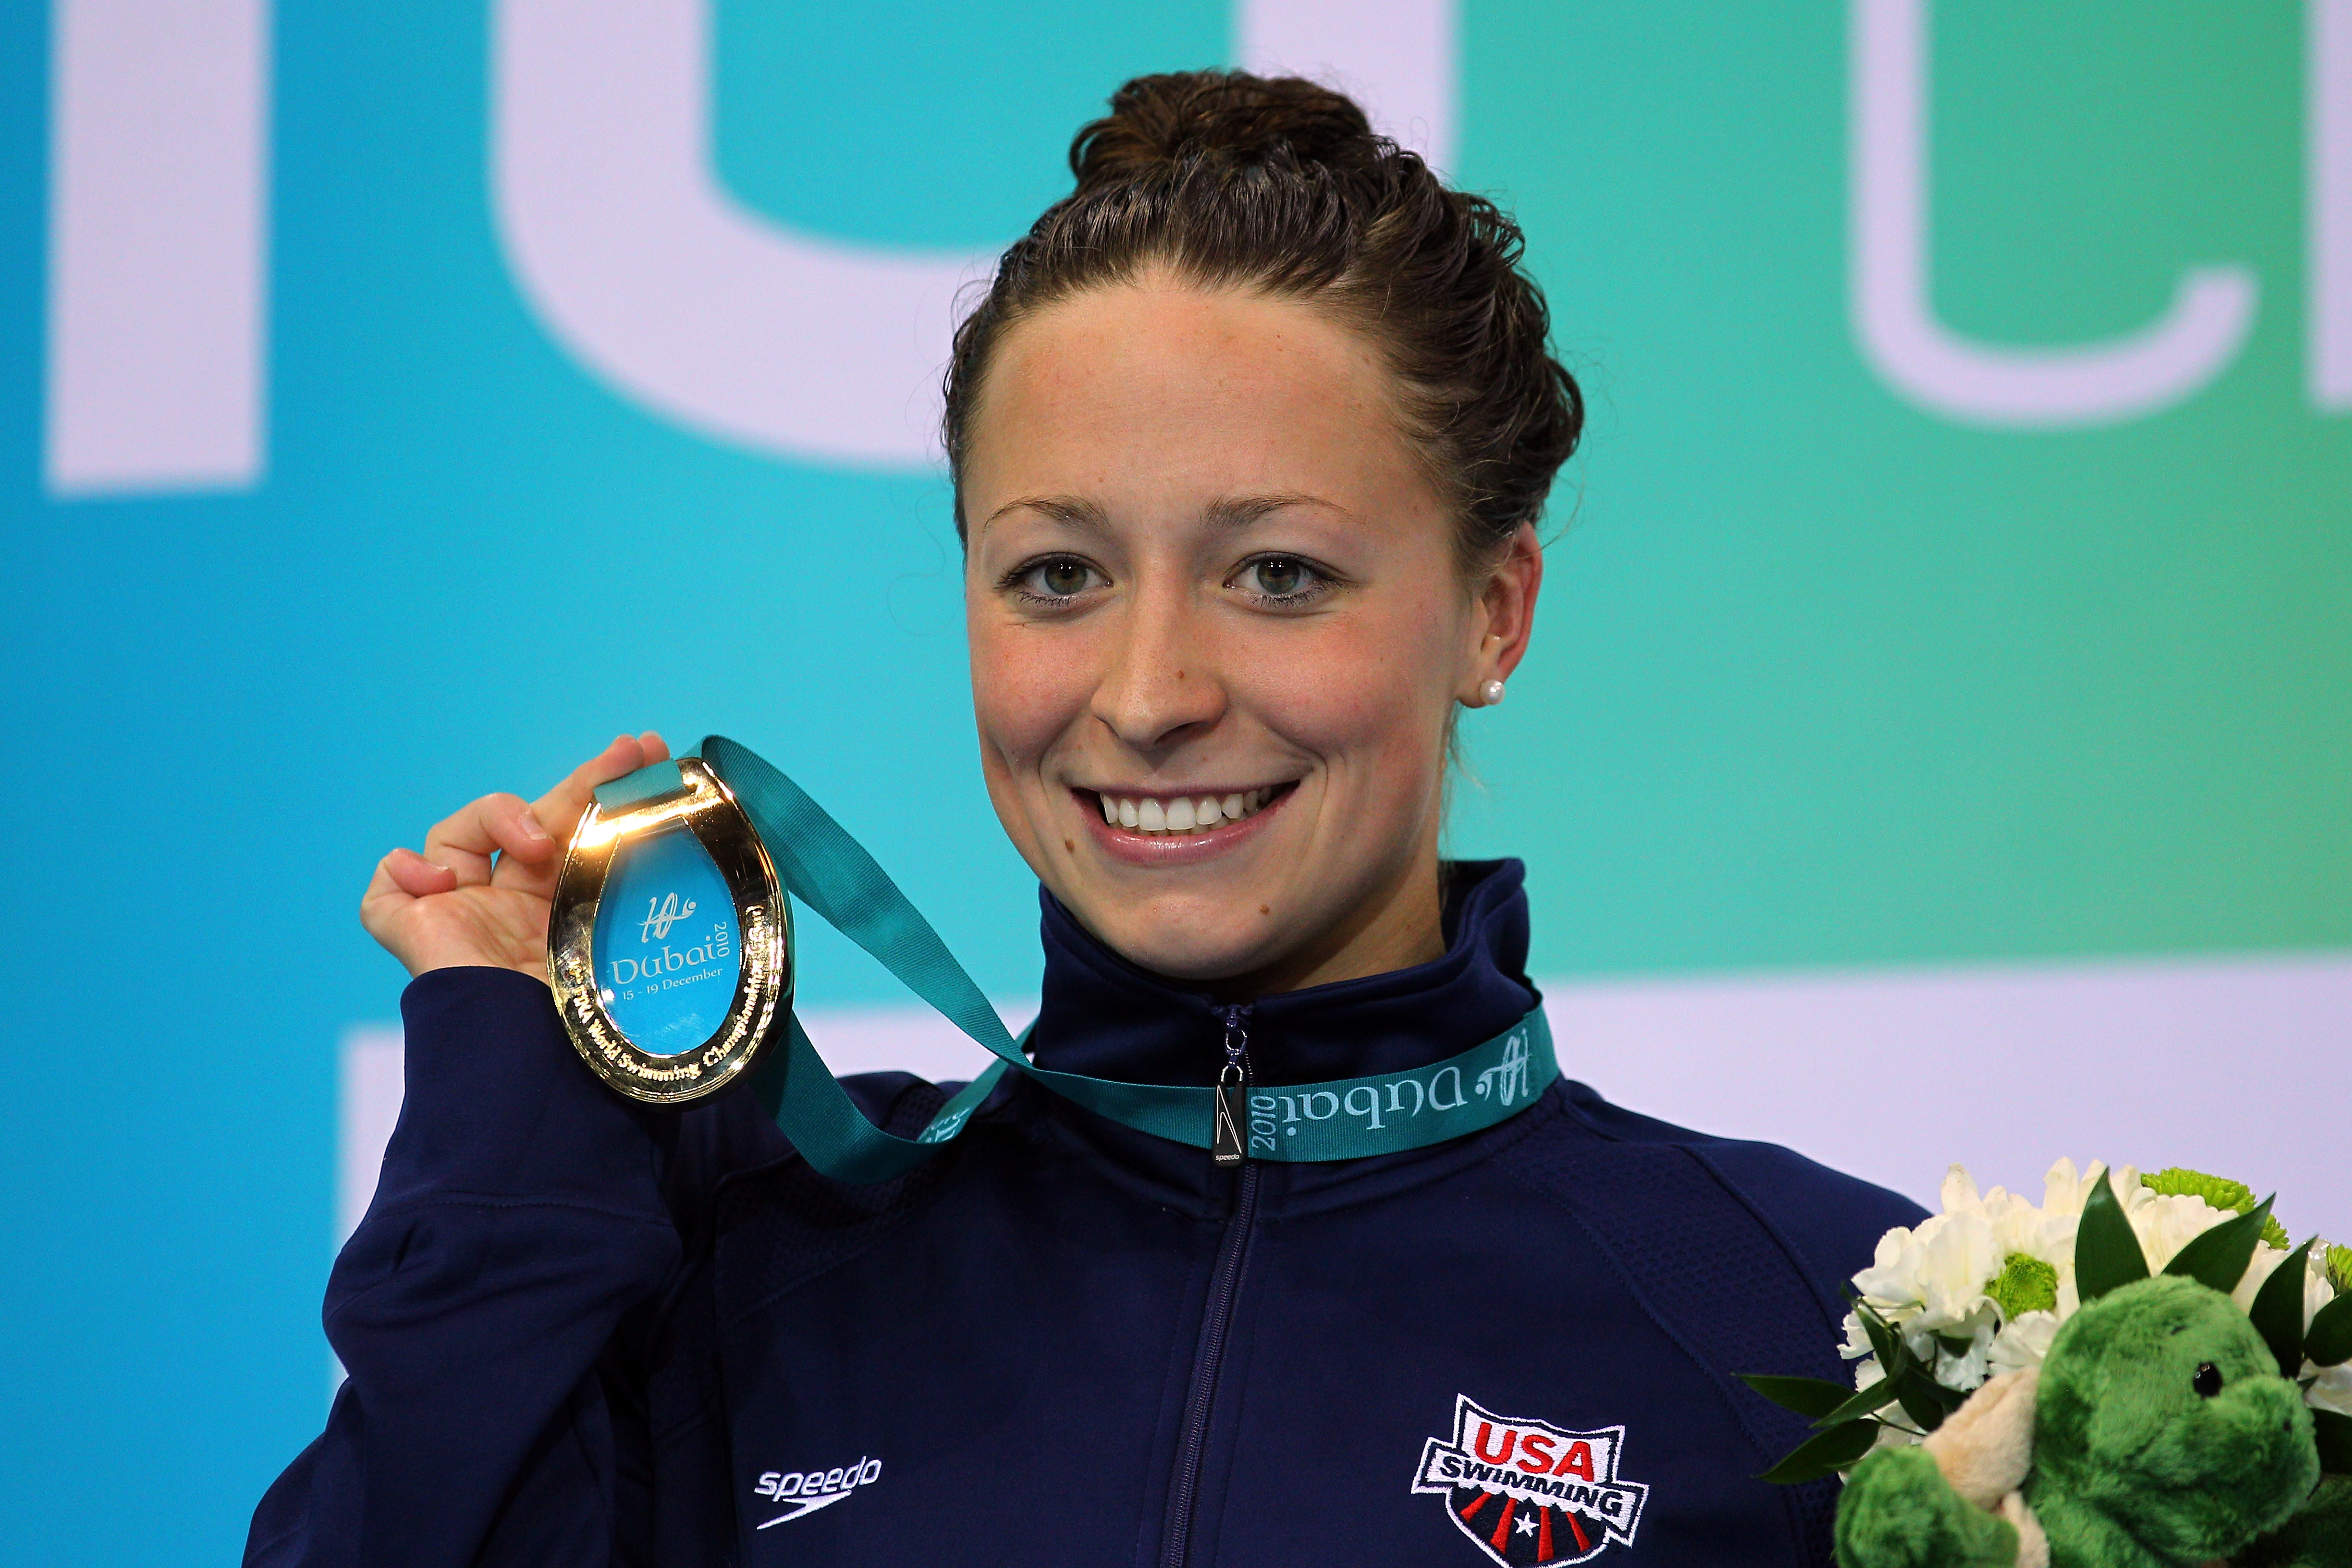 Ariana Kukors poses with her Gold medal after winning the Women's 100m Individual Medley final at the FINA World Swimming Championships.